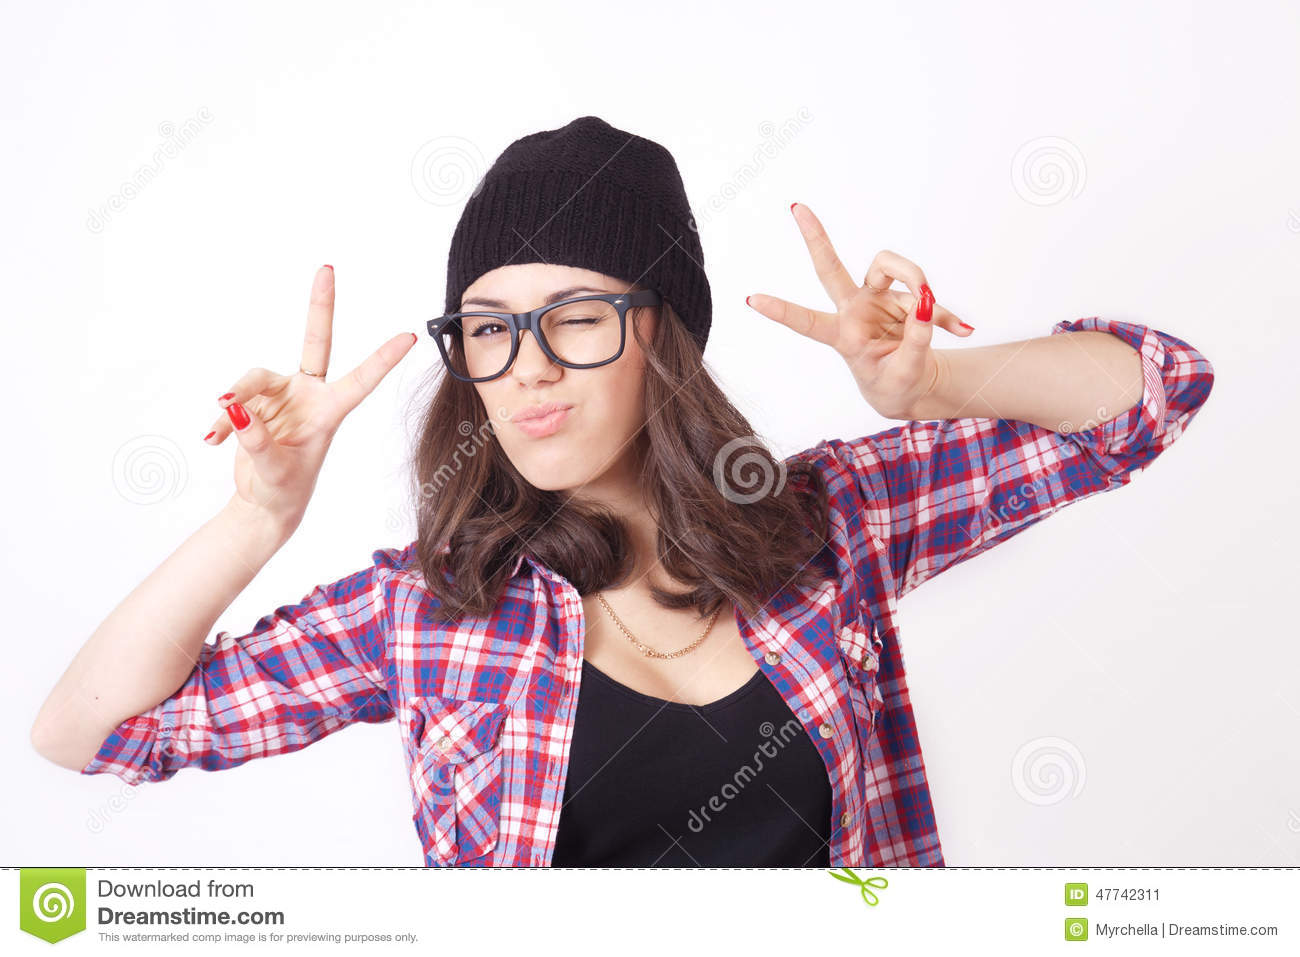 6d1bf361d34 Cute Hipster Teenage Girl With Beanie Hat Stock Image - Image of ...